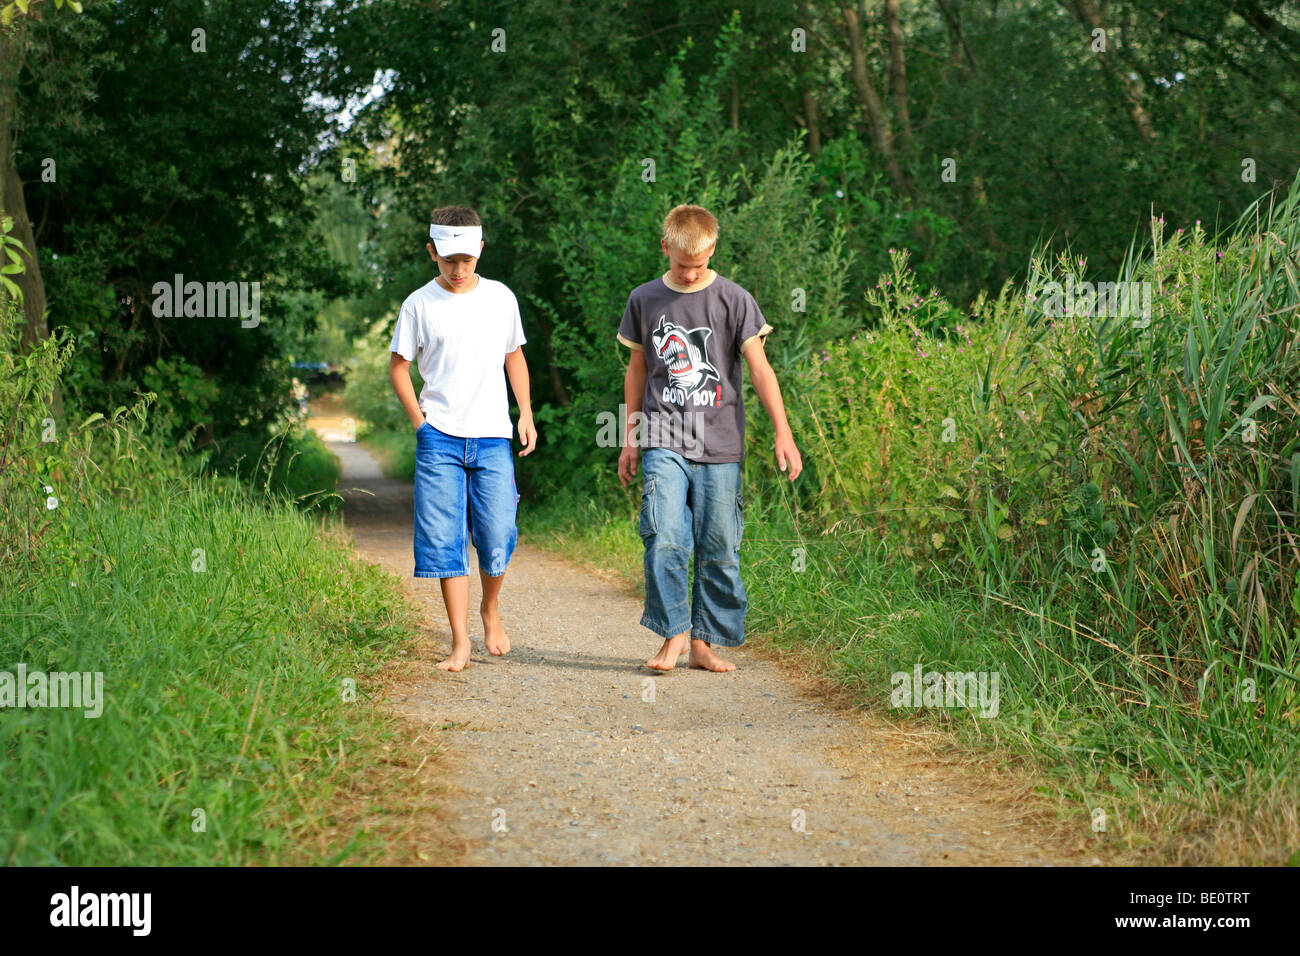 http://c7.alamy.com/comp/BE0TRT/young-boys-walking-barefoot-along-a-forest-path-BE0TRT.jpg